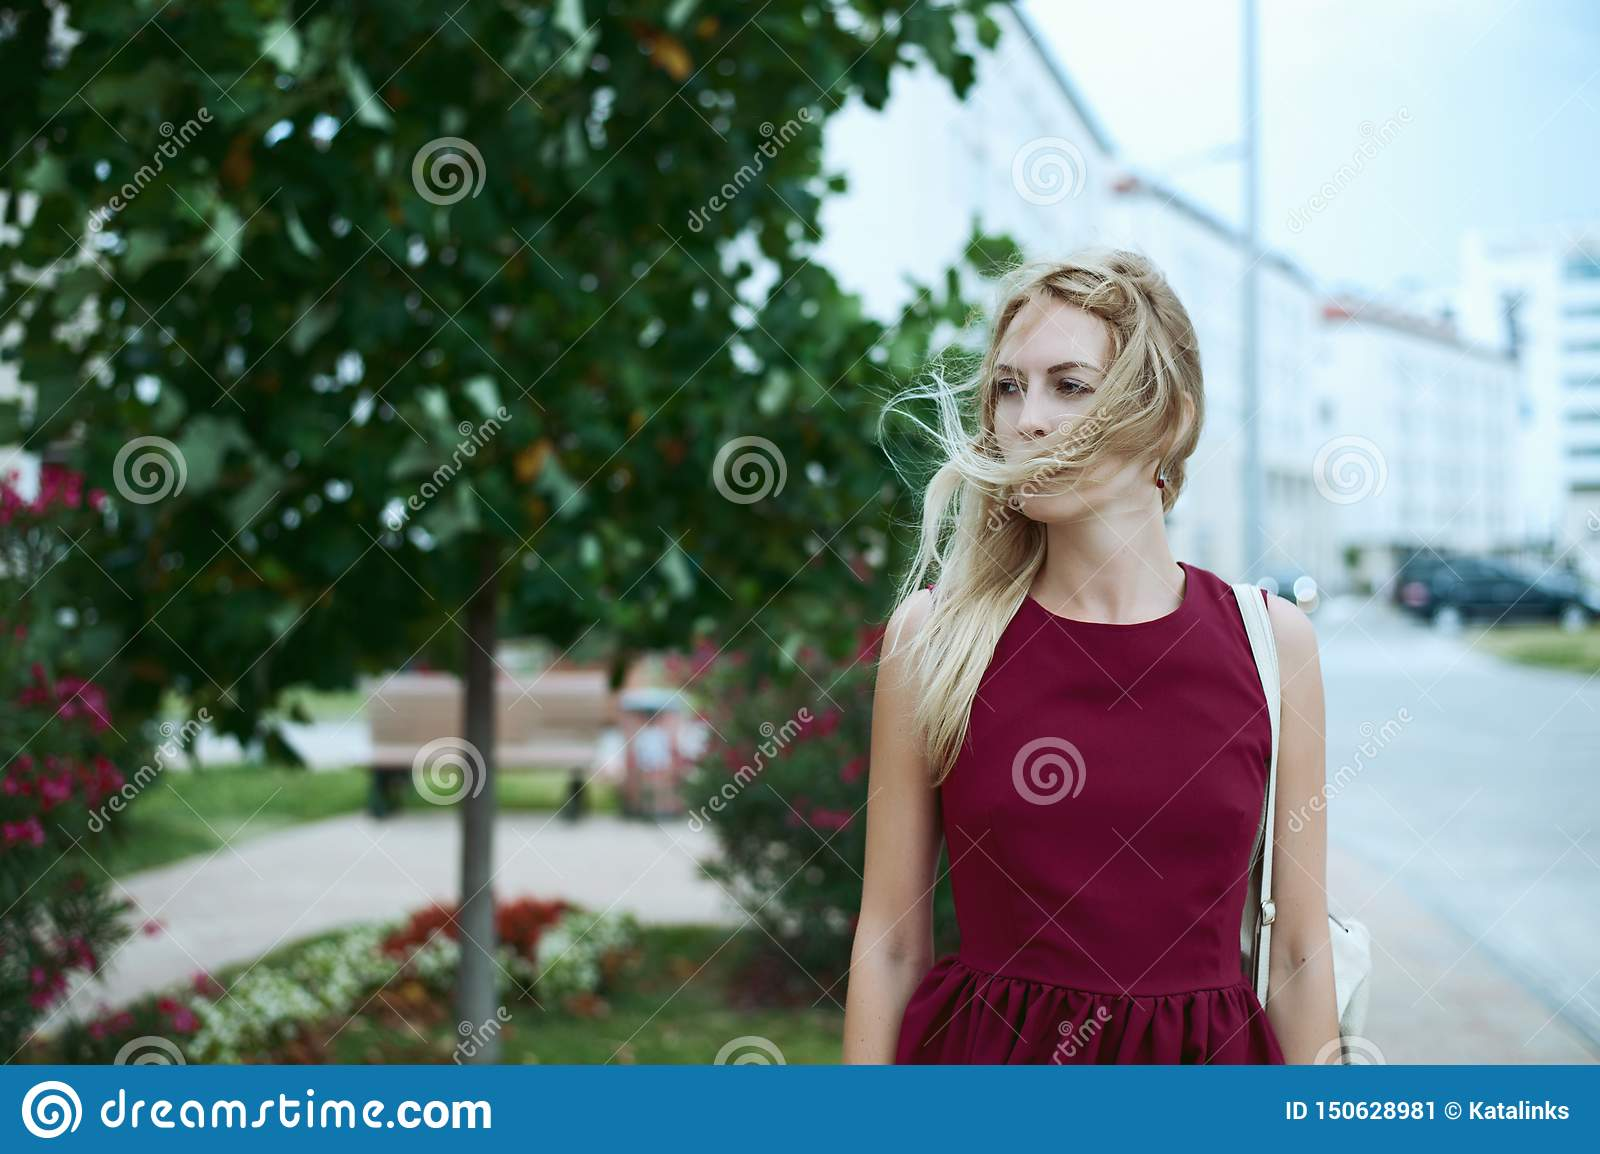 Beautiful young woman blonde with long hair in a fashionable burgundy dress